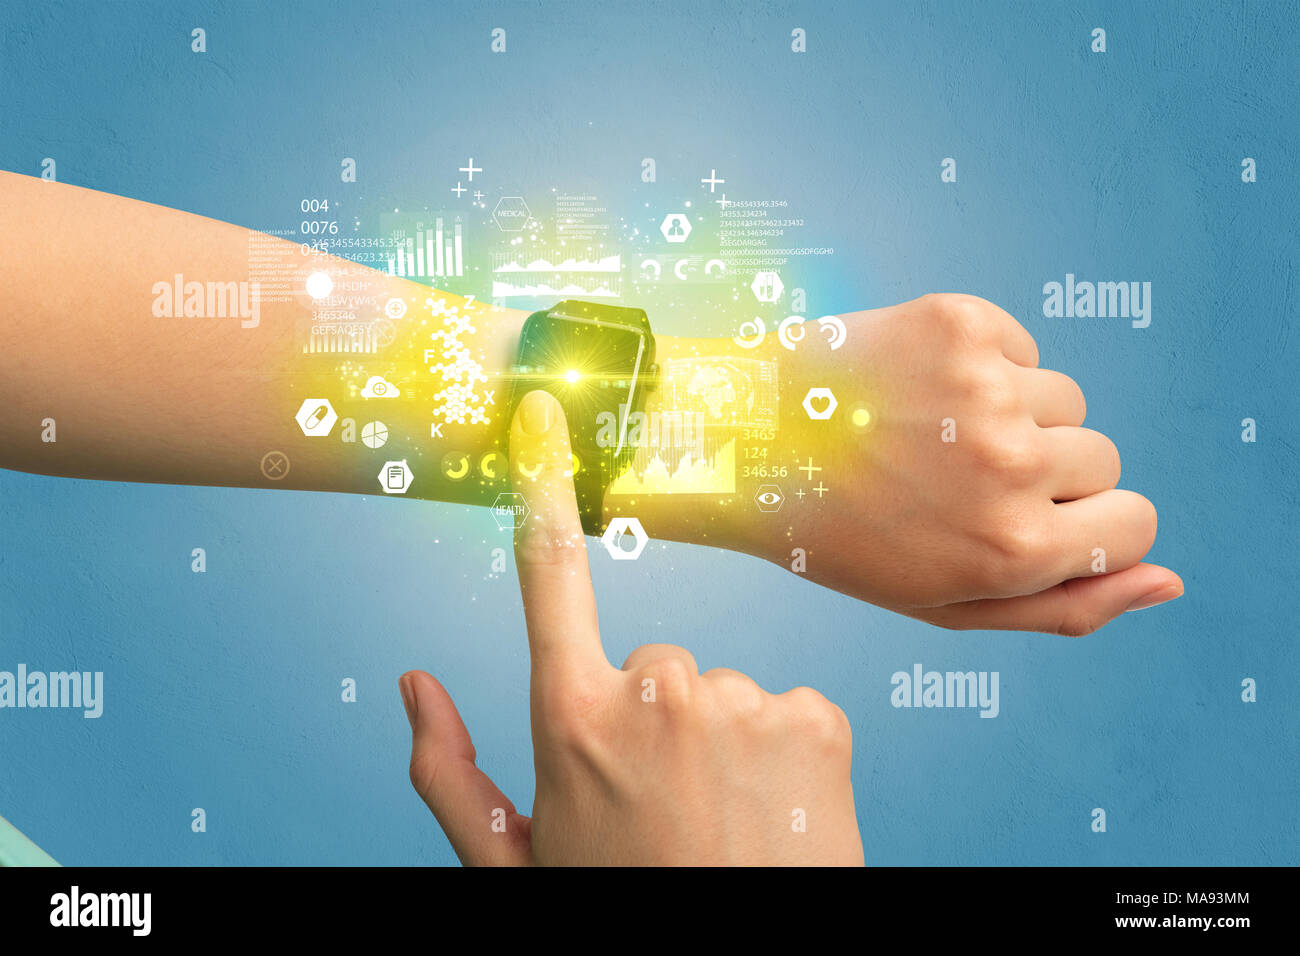 Hand with smartwatch and health medical tracker concept.  - Stock Image